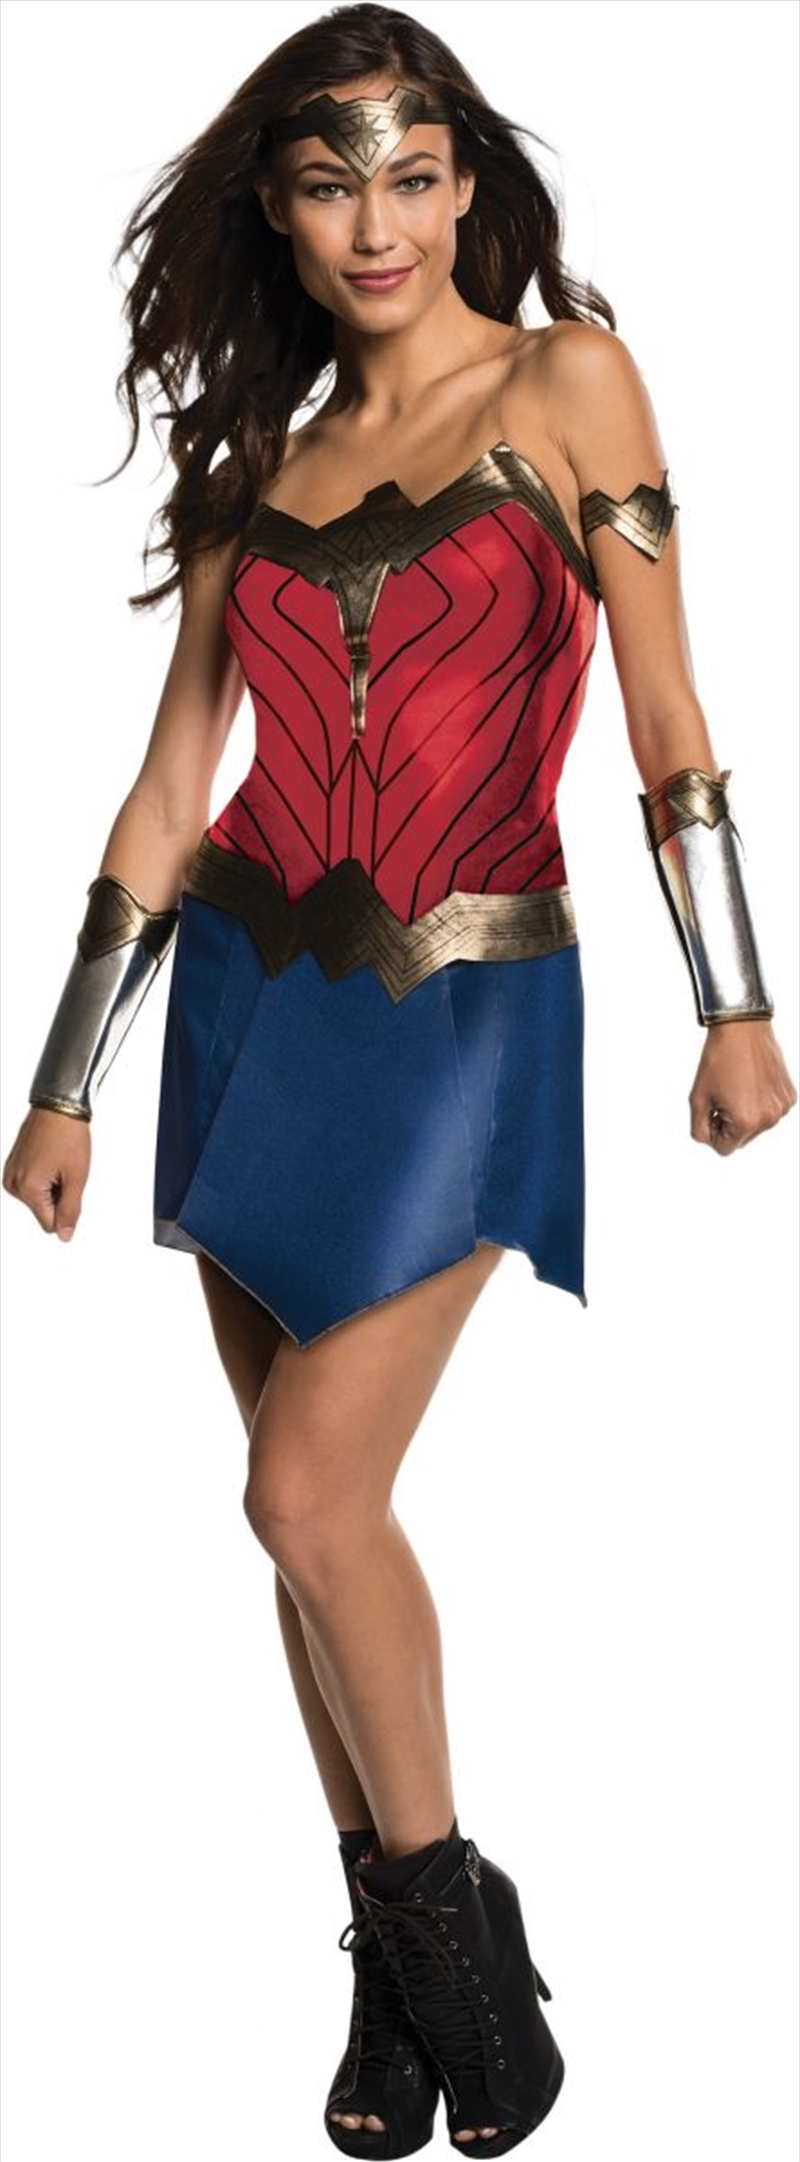 Wonder Woman Classic Costume (Large) | Apparel